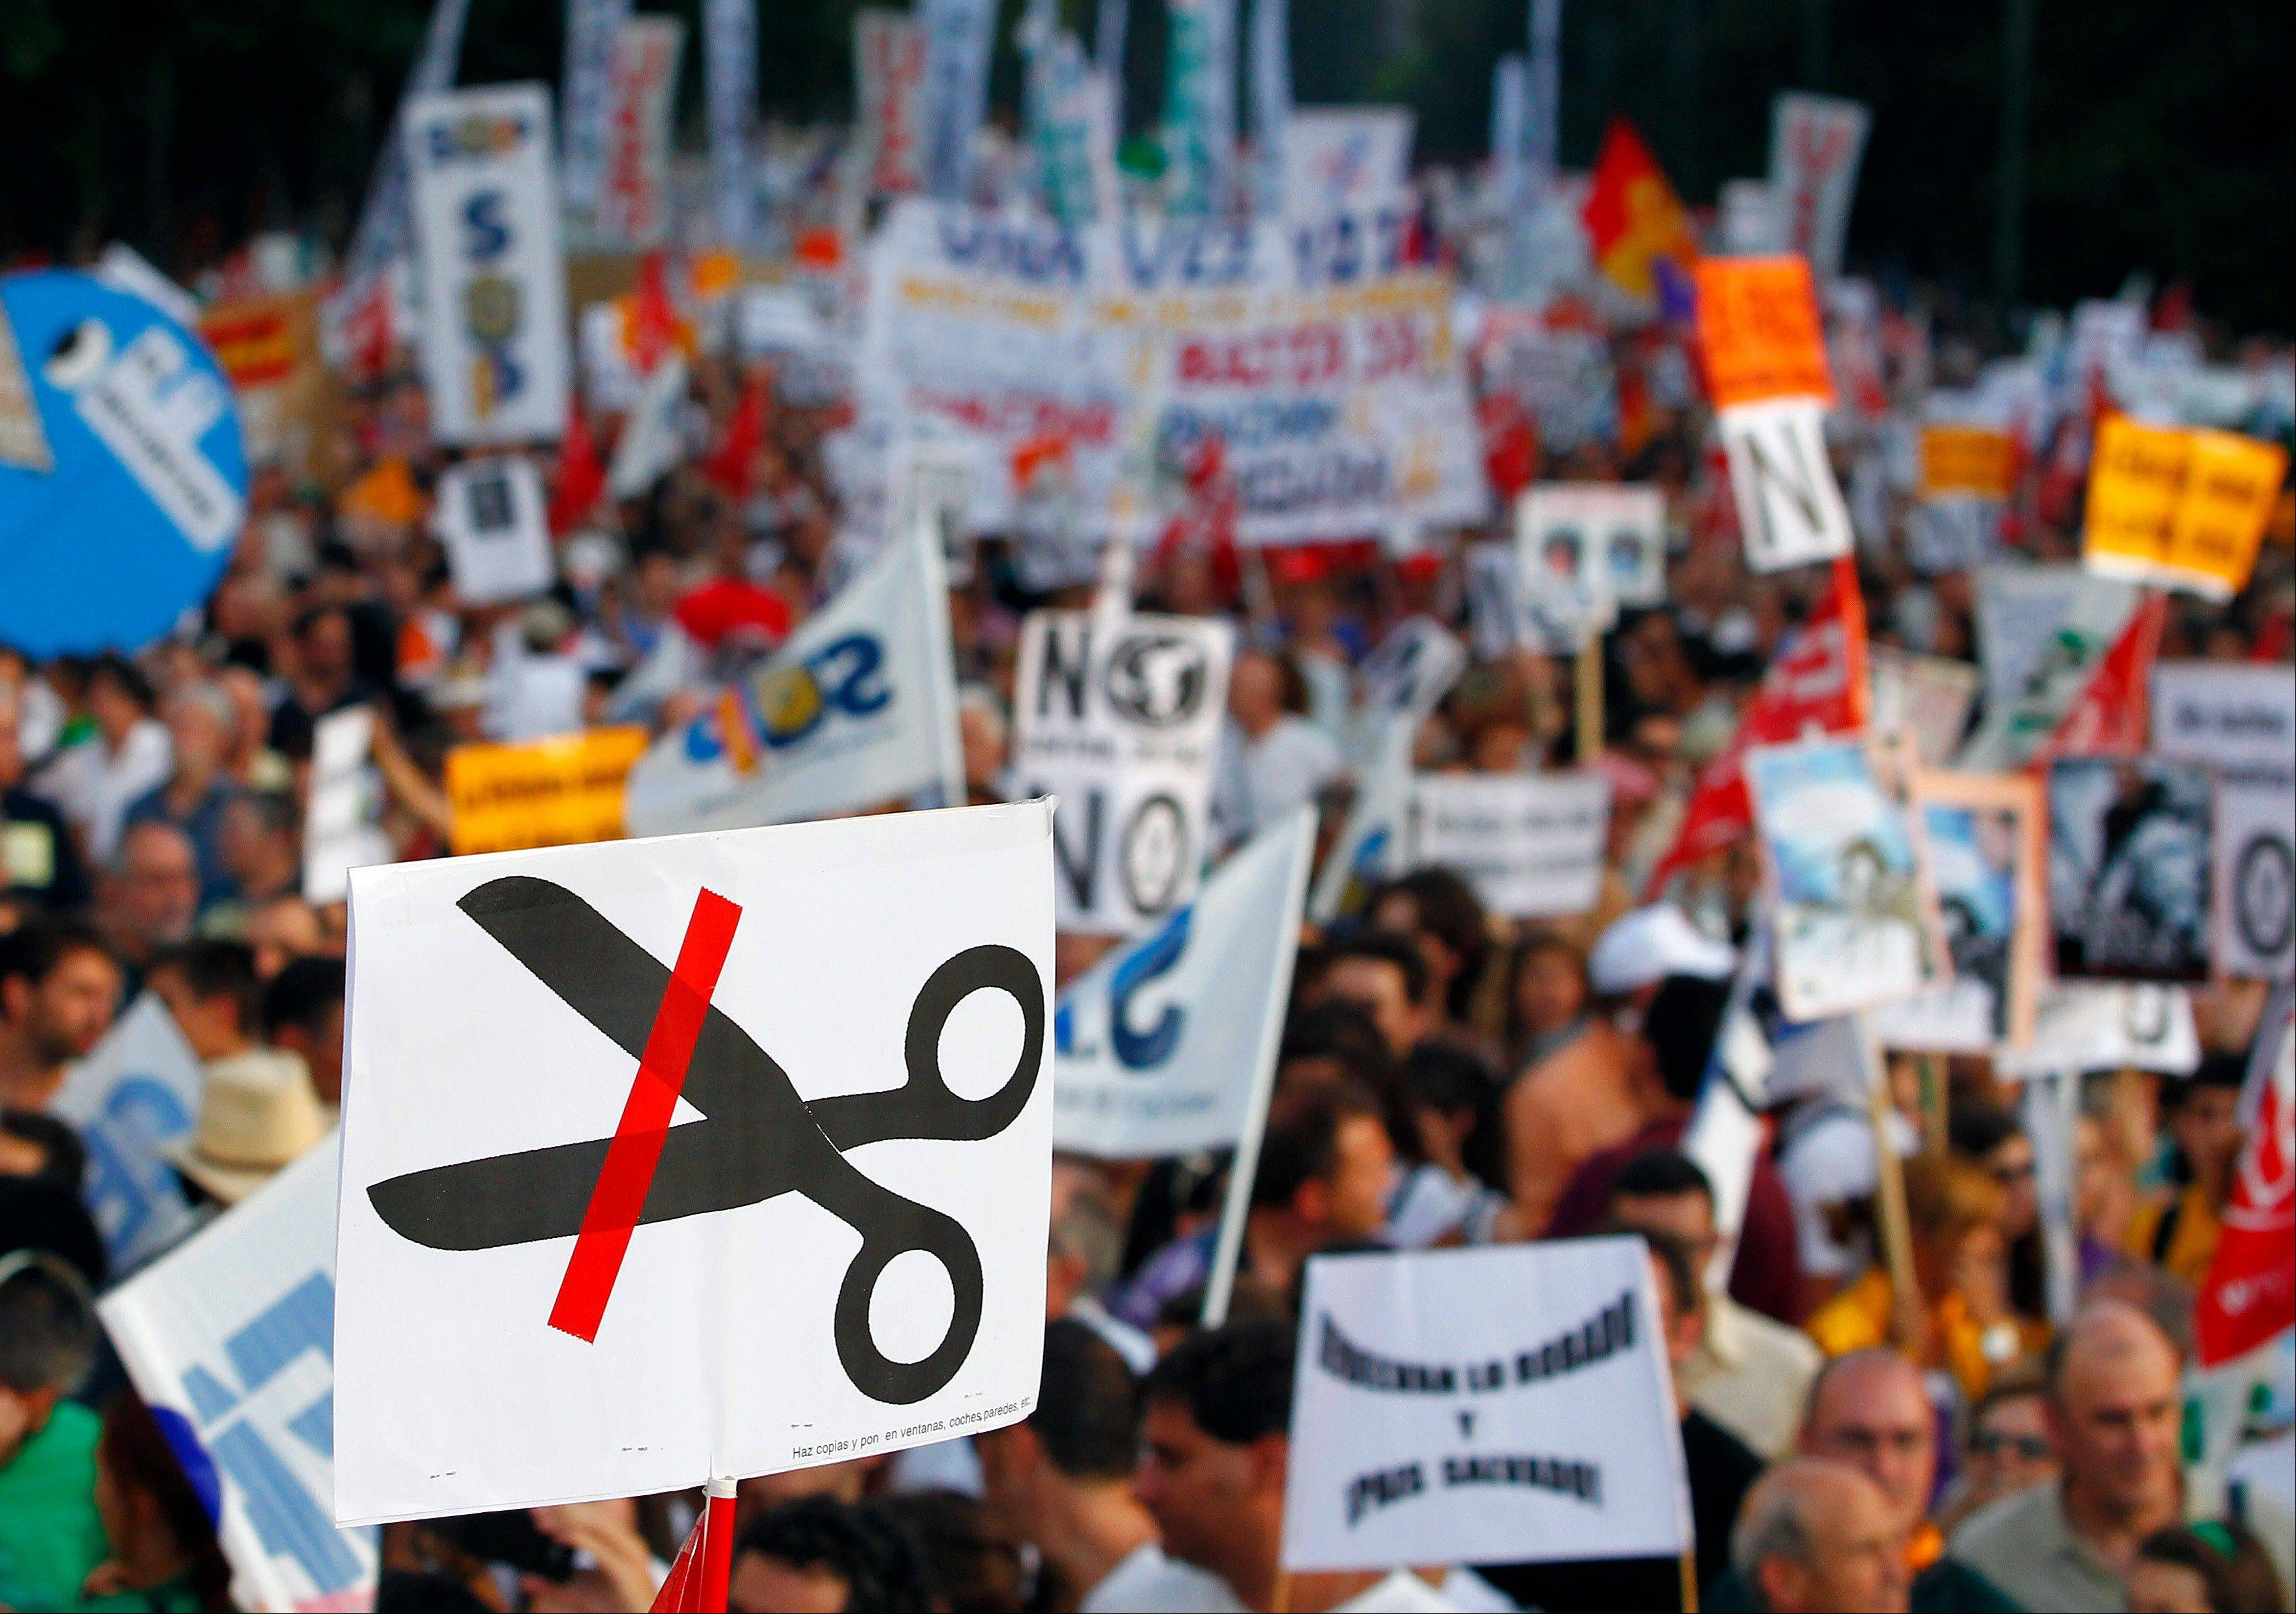 Demonstrators protest against austerity measures announced by the Spanish government in Madrid, Spain.